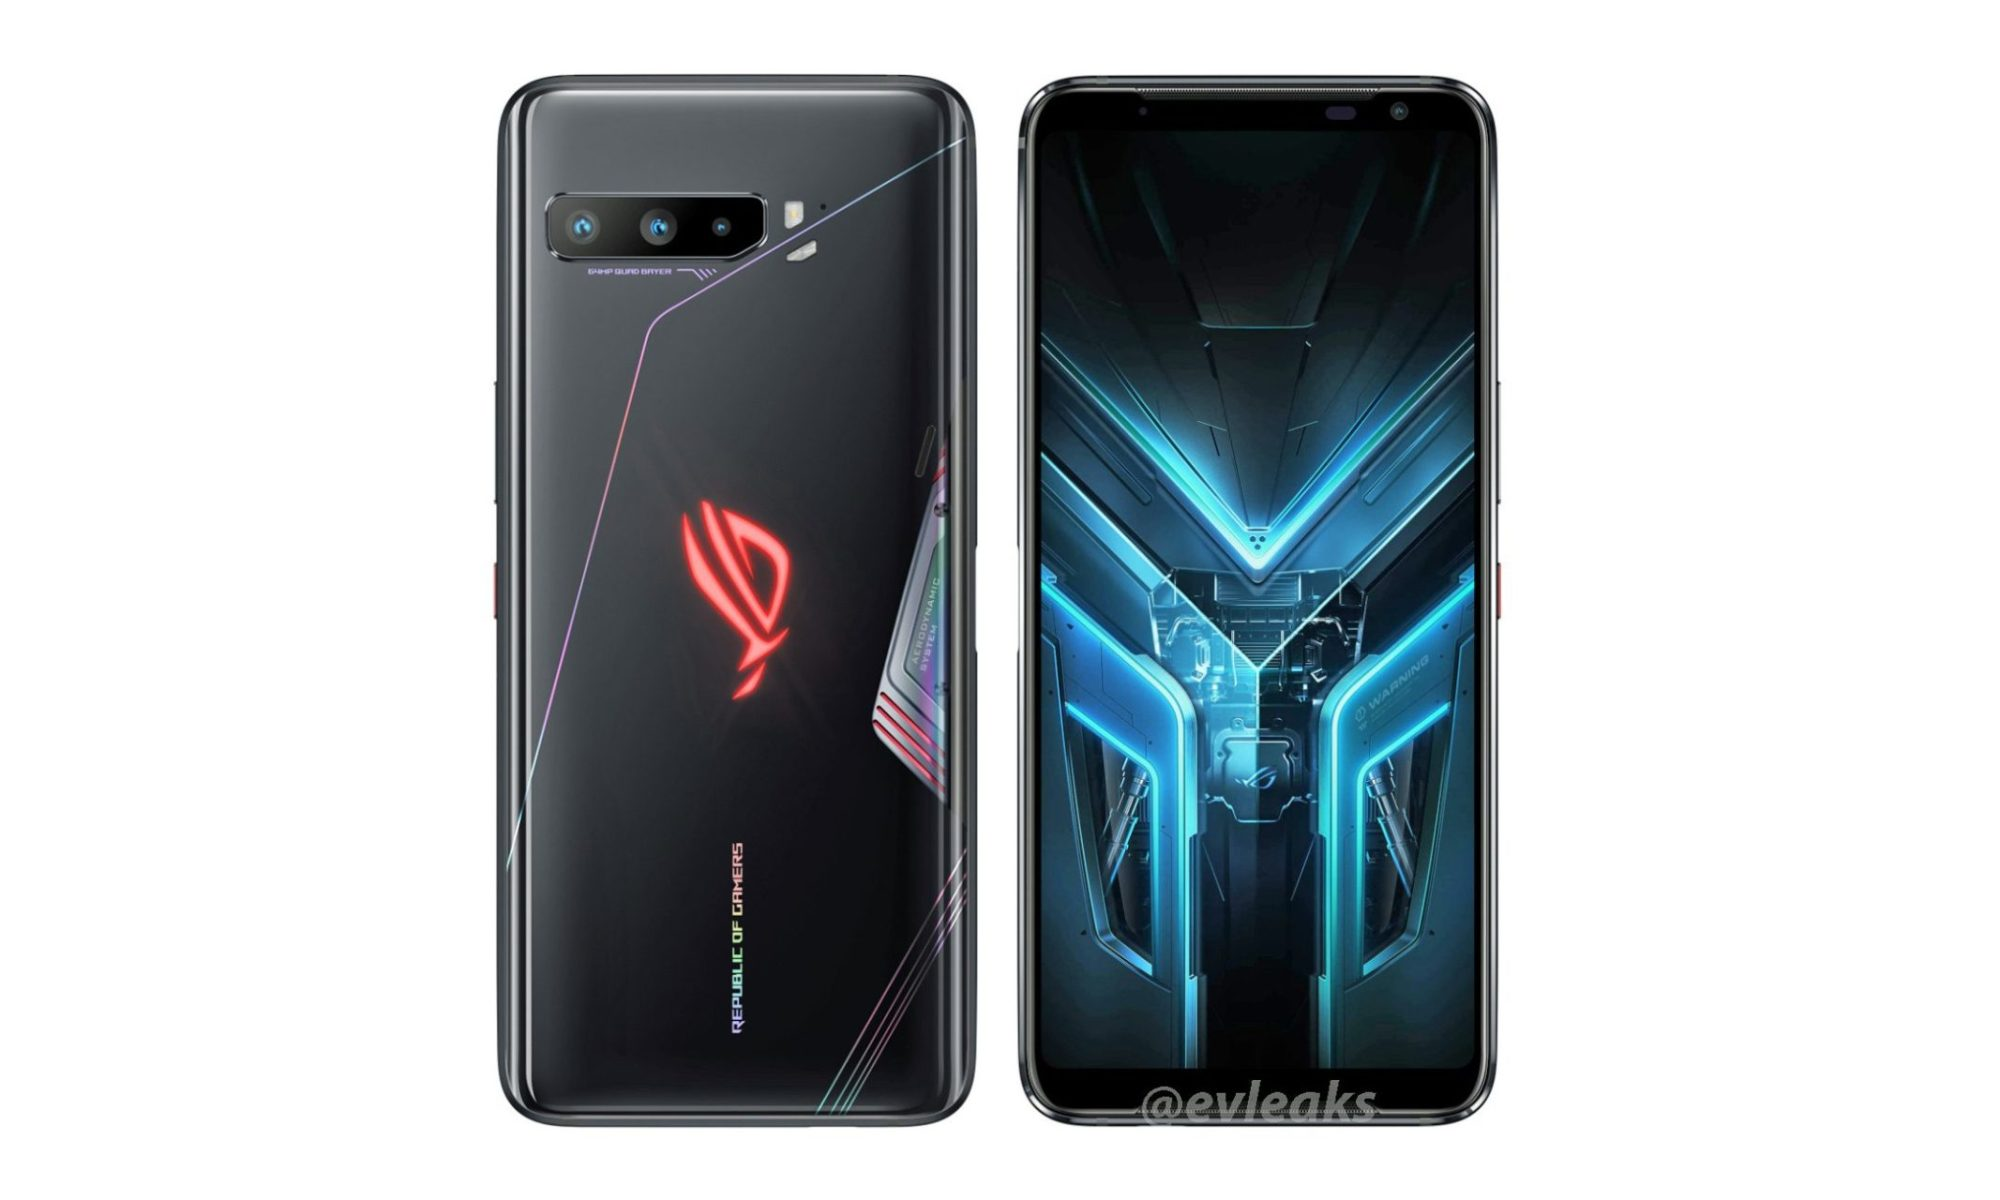 How to Root Asus ROG Phone 3 with Magisk without TWRP